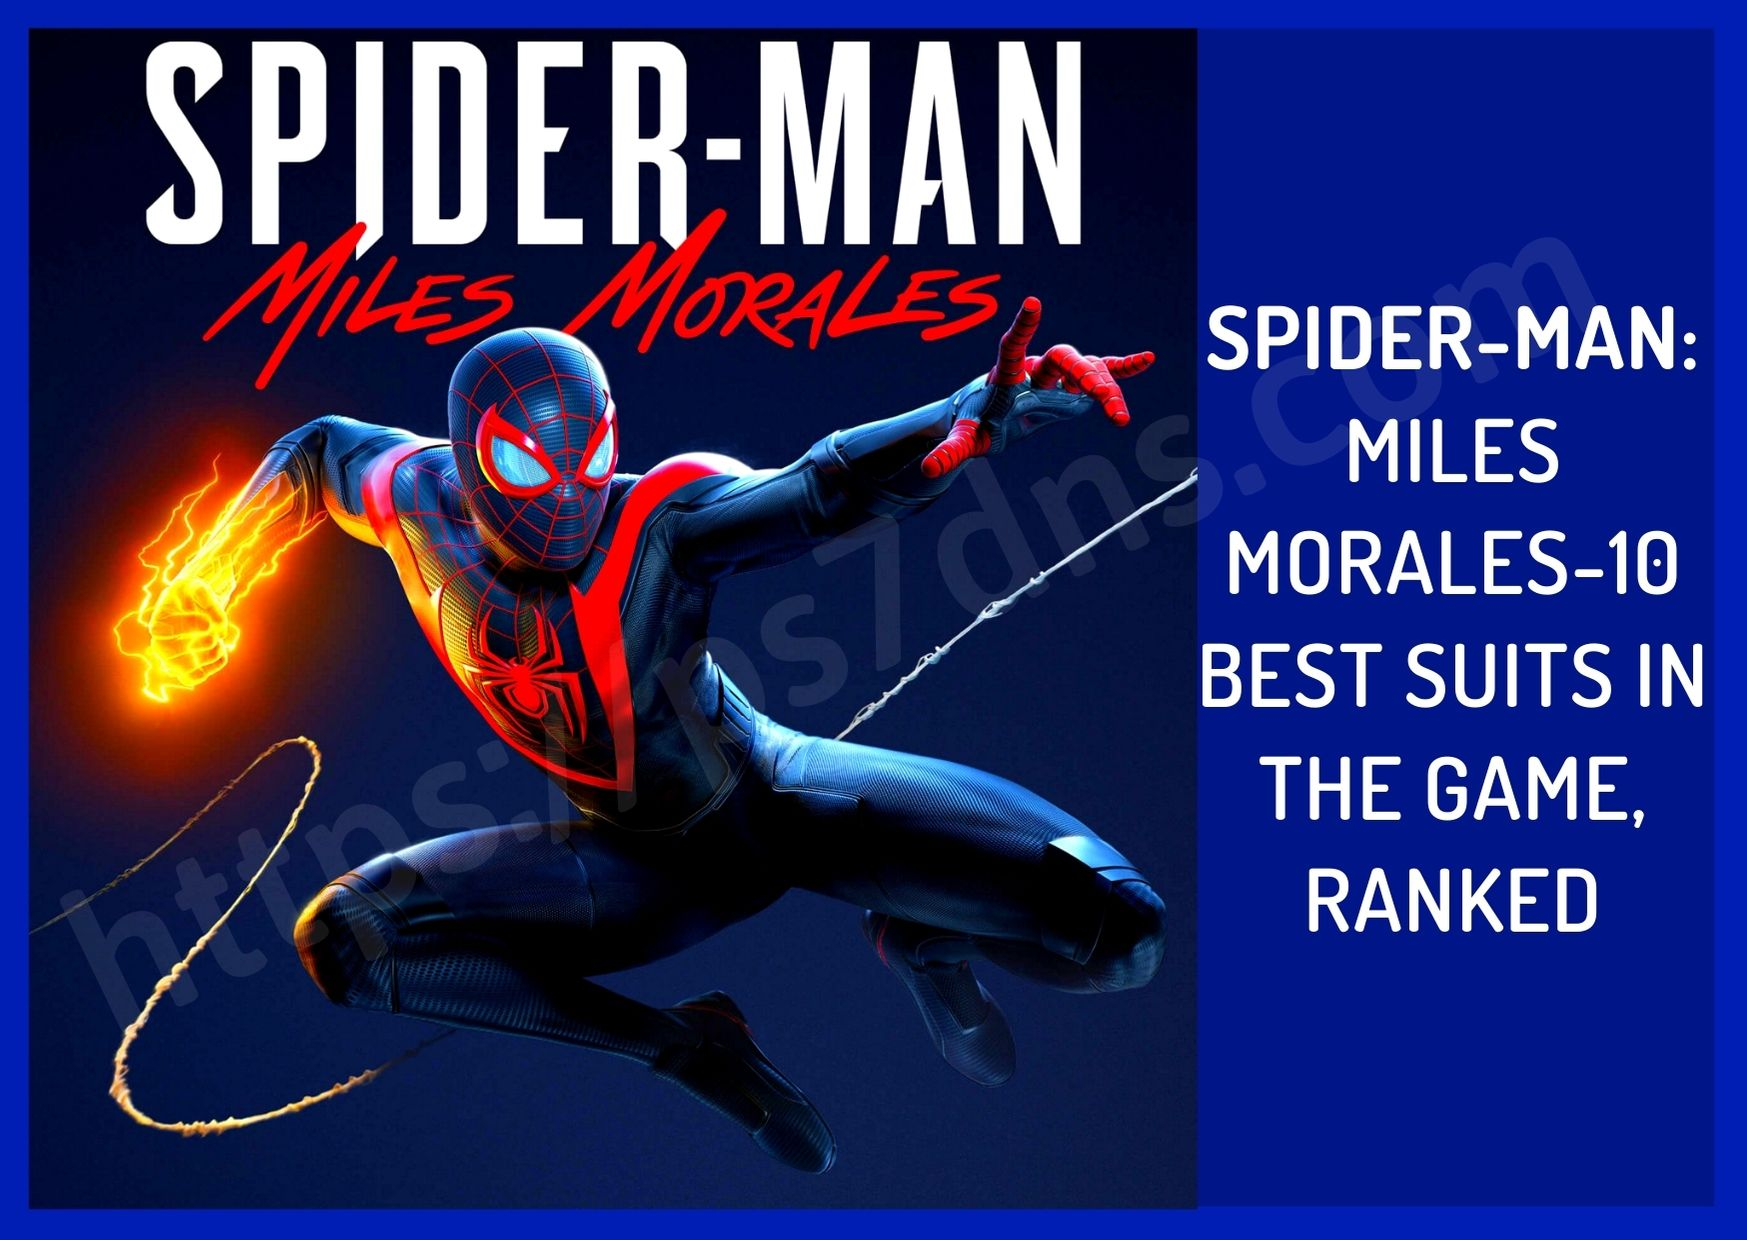 Spider-Man: Miles Morales-10 Best Suits In The Game, Ranked